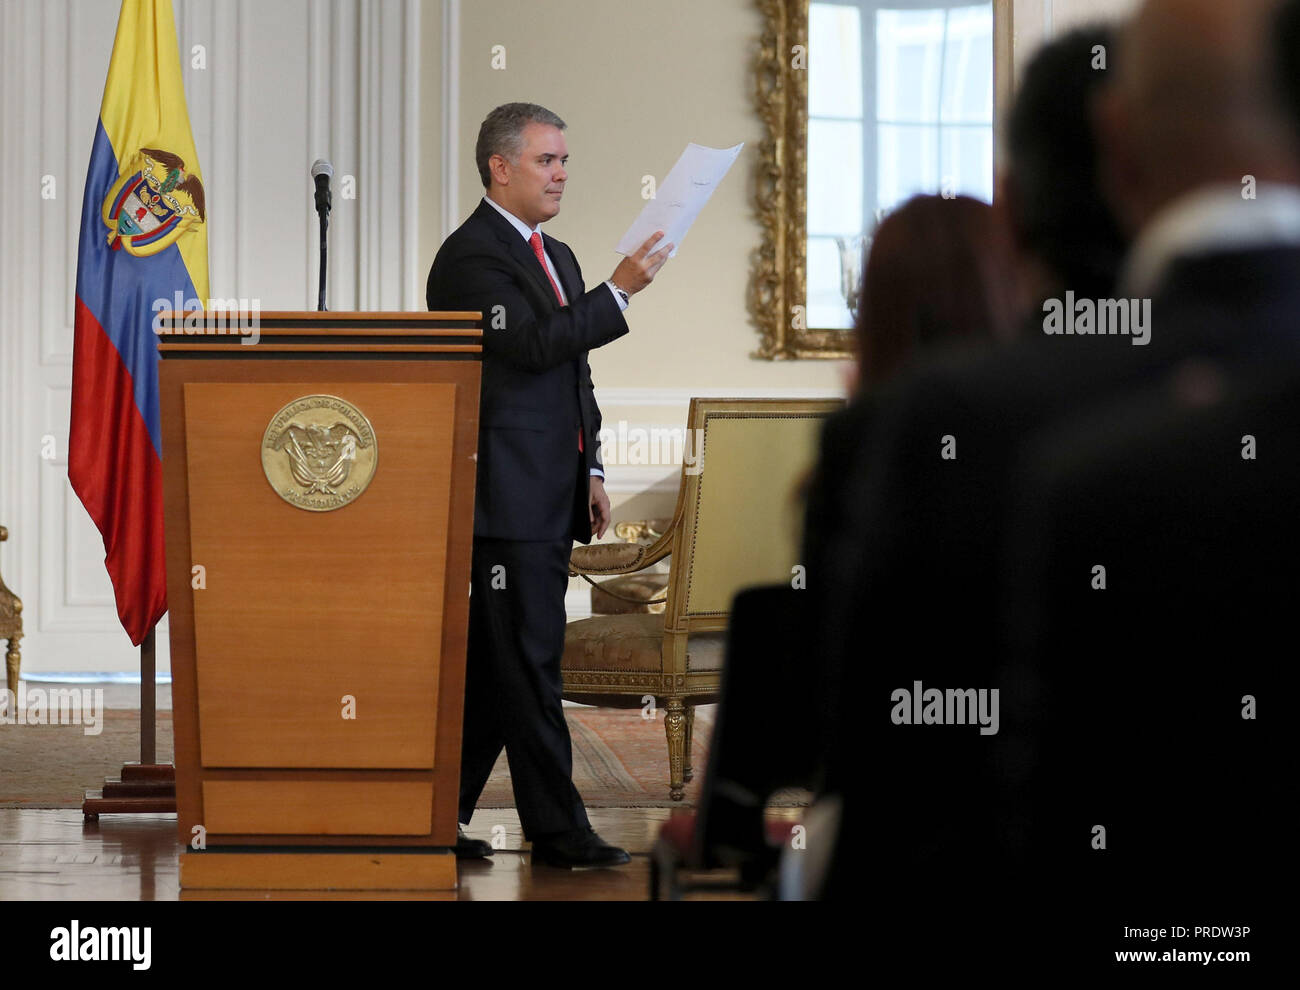 Colombian President Ivan Duque offers a press conference after signs of a decree to authorize Police to confiscate personal amount of drugs or forbidden substances, in Bogota, Colombia, on 1 October 2018. EFE/Mauricio Dueñas Castañeda - Stock Image